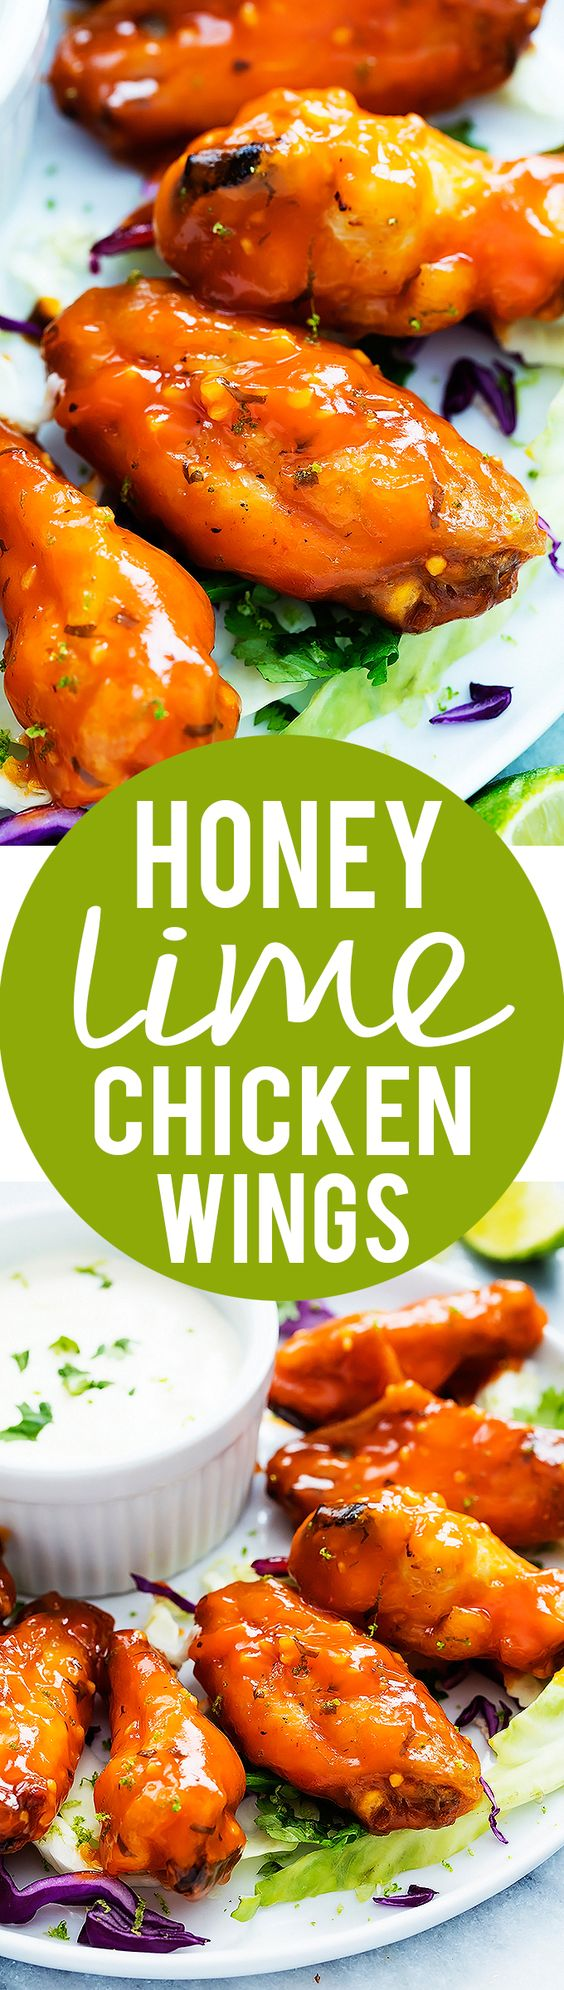 Spicy, sticky Baked Honey Lime Chicken Wings | Creme de la Crumb: